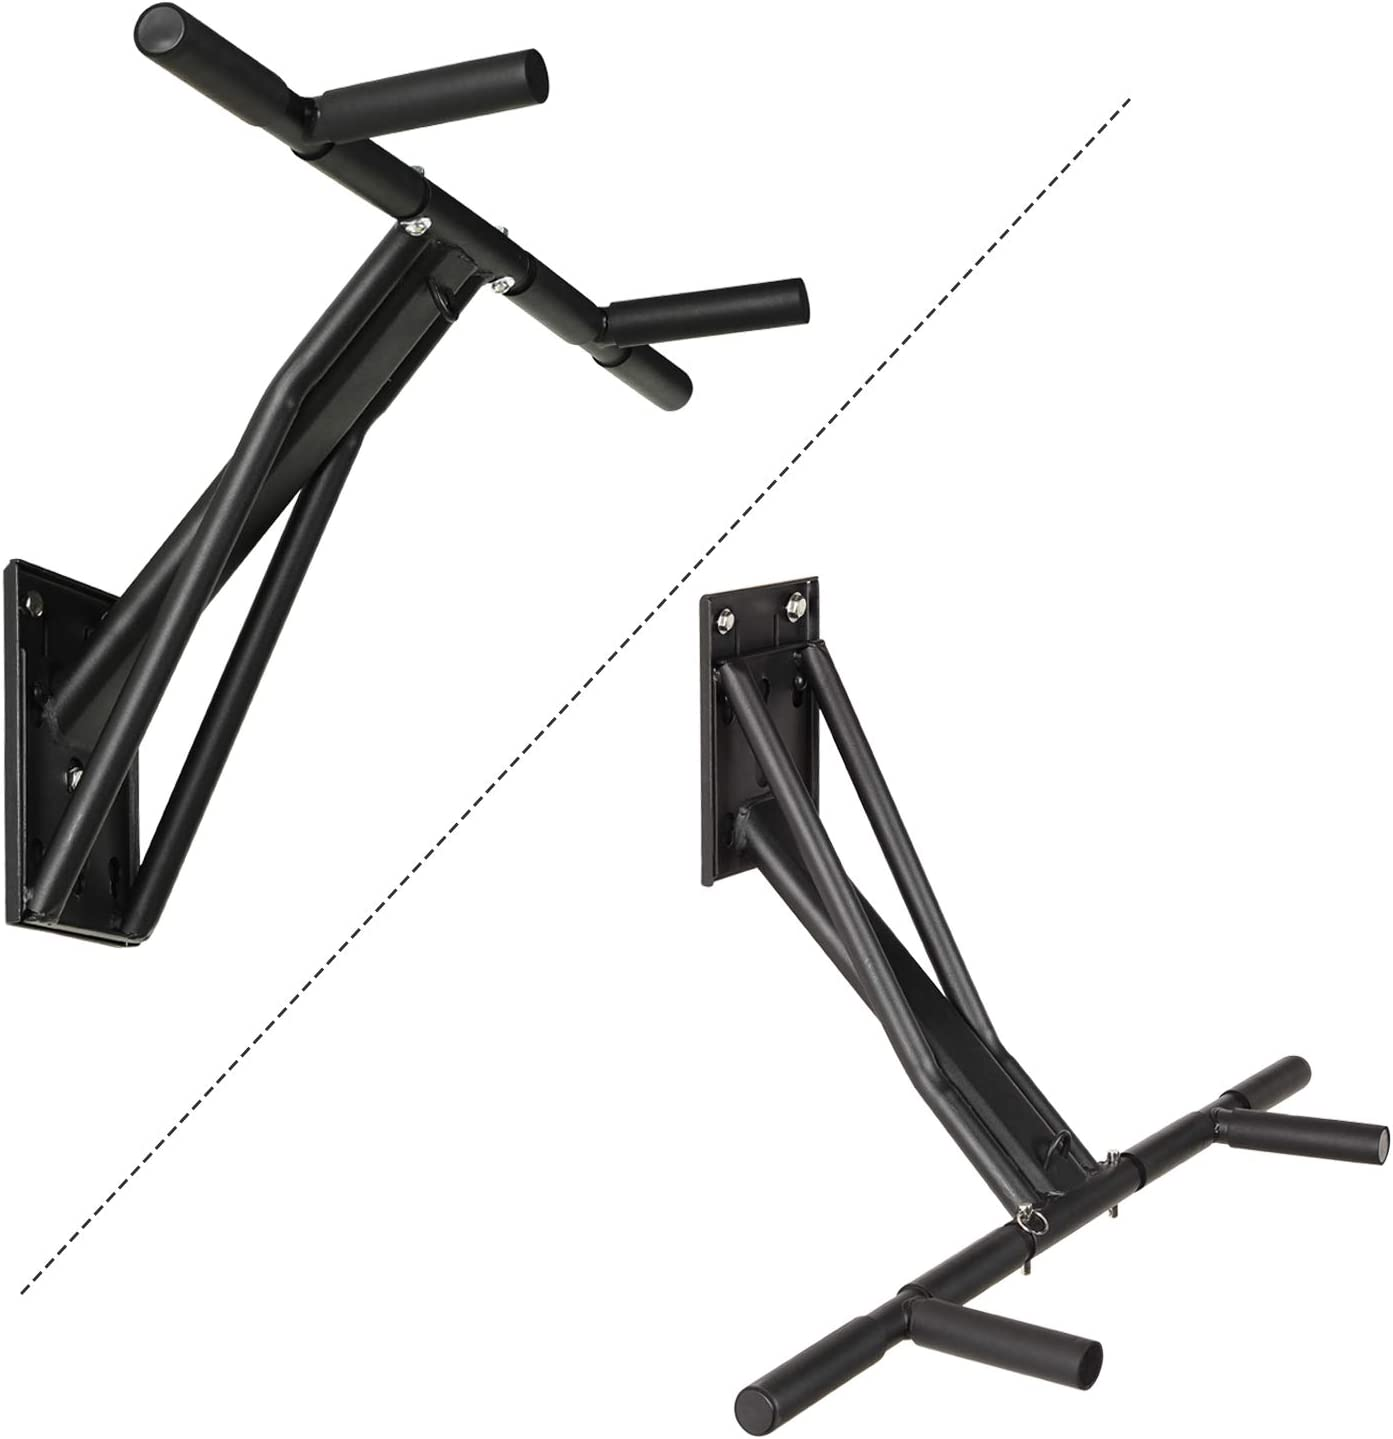 Wall Mounted Home G-ym Chin Draw Chin Up Bar Core Power Tower Dip Station for Men Women Pulls Push Ab Workout MINIKID 【US Fast Shipment】 Pull Up Bar for Doorway Chin Up Bar Black